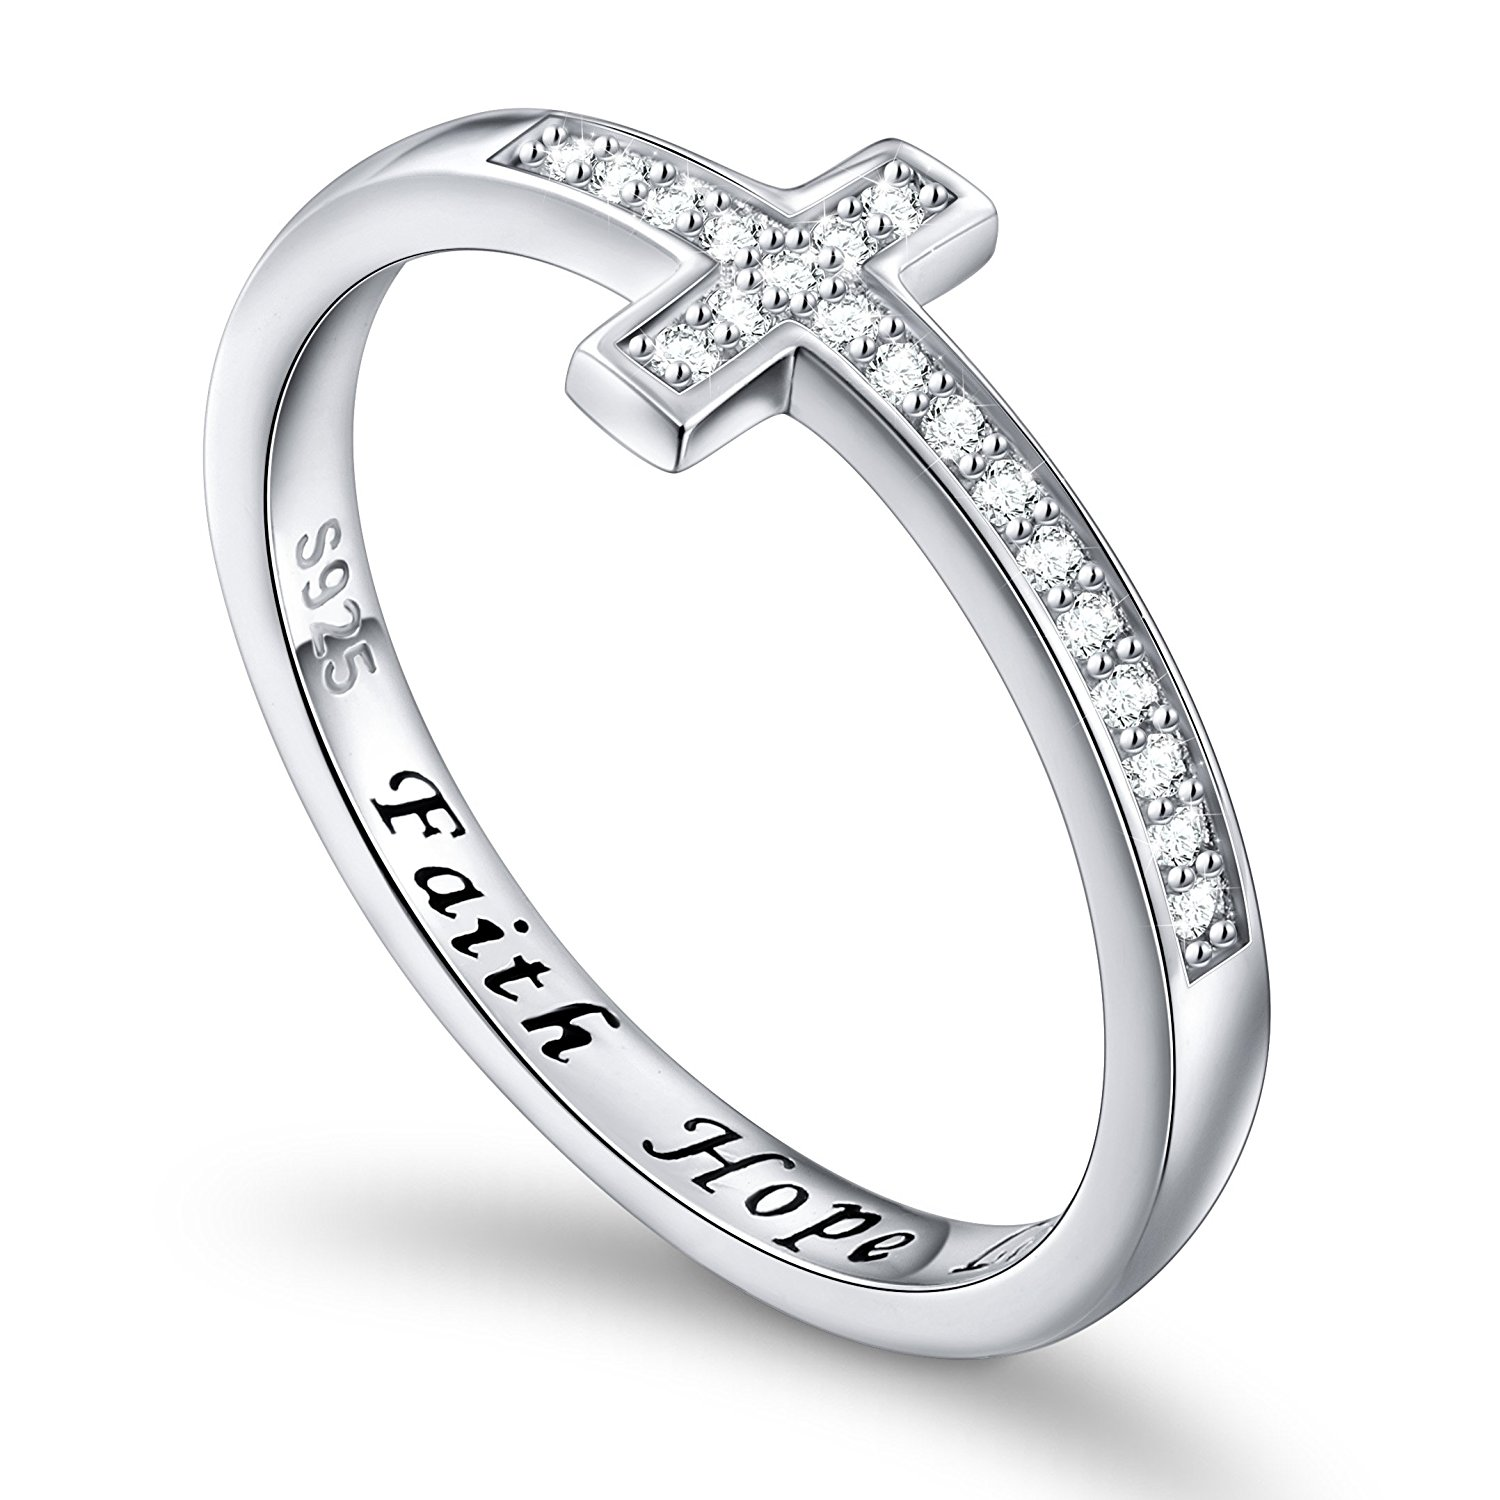 DAOCHONG Inspirational Jewelry Sterling Silver Engraved Faith Hope Love Sideway Cross Ring, Size 5-10